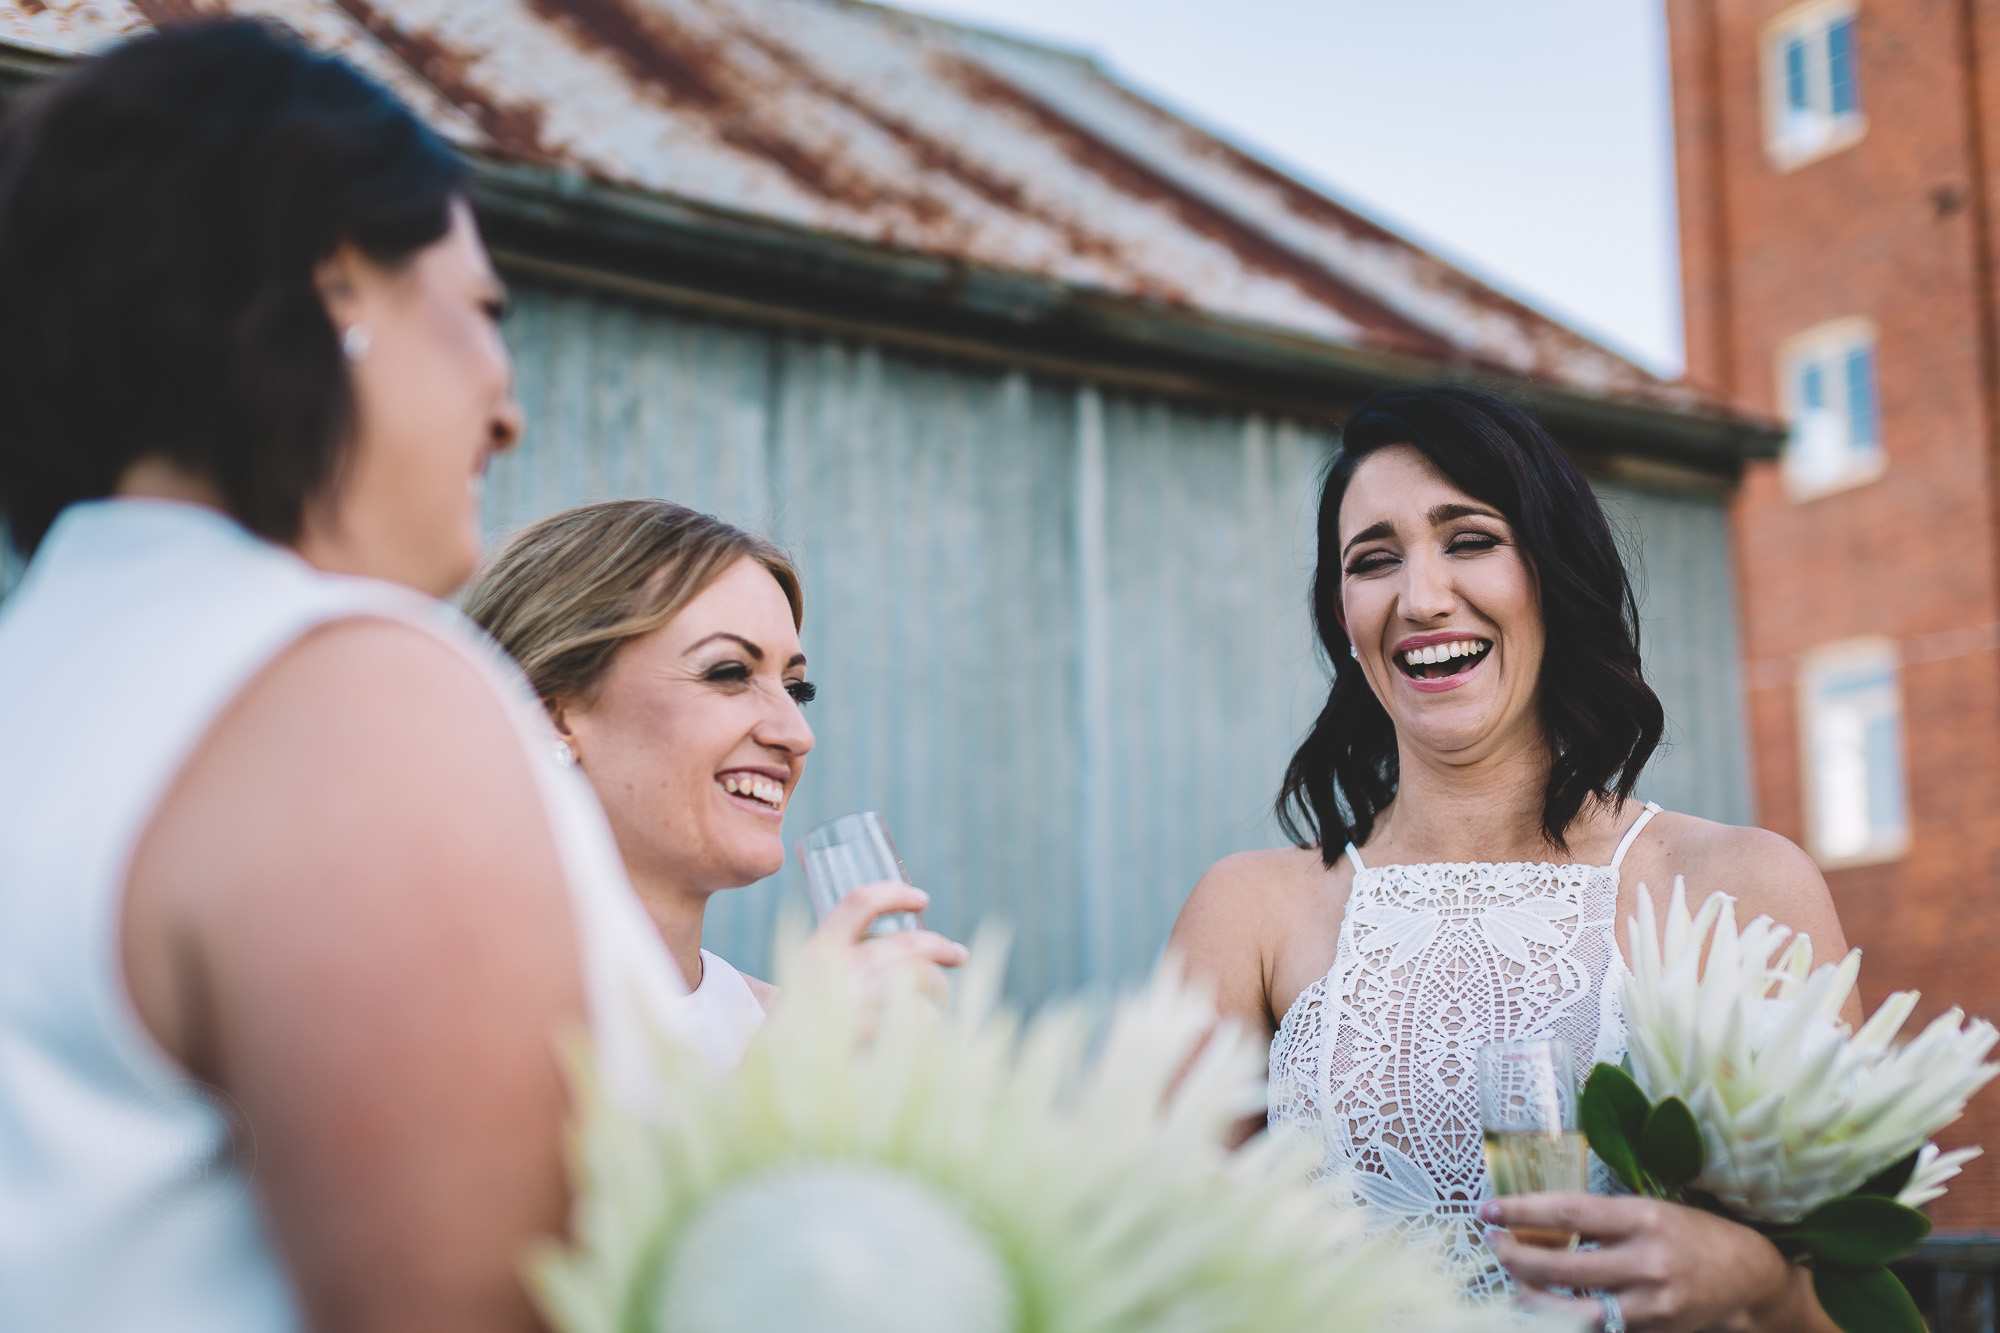 Rutherglen-Wedding-Photographer-1046.jpg